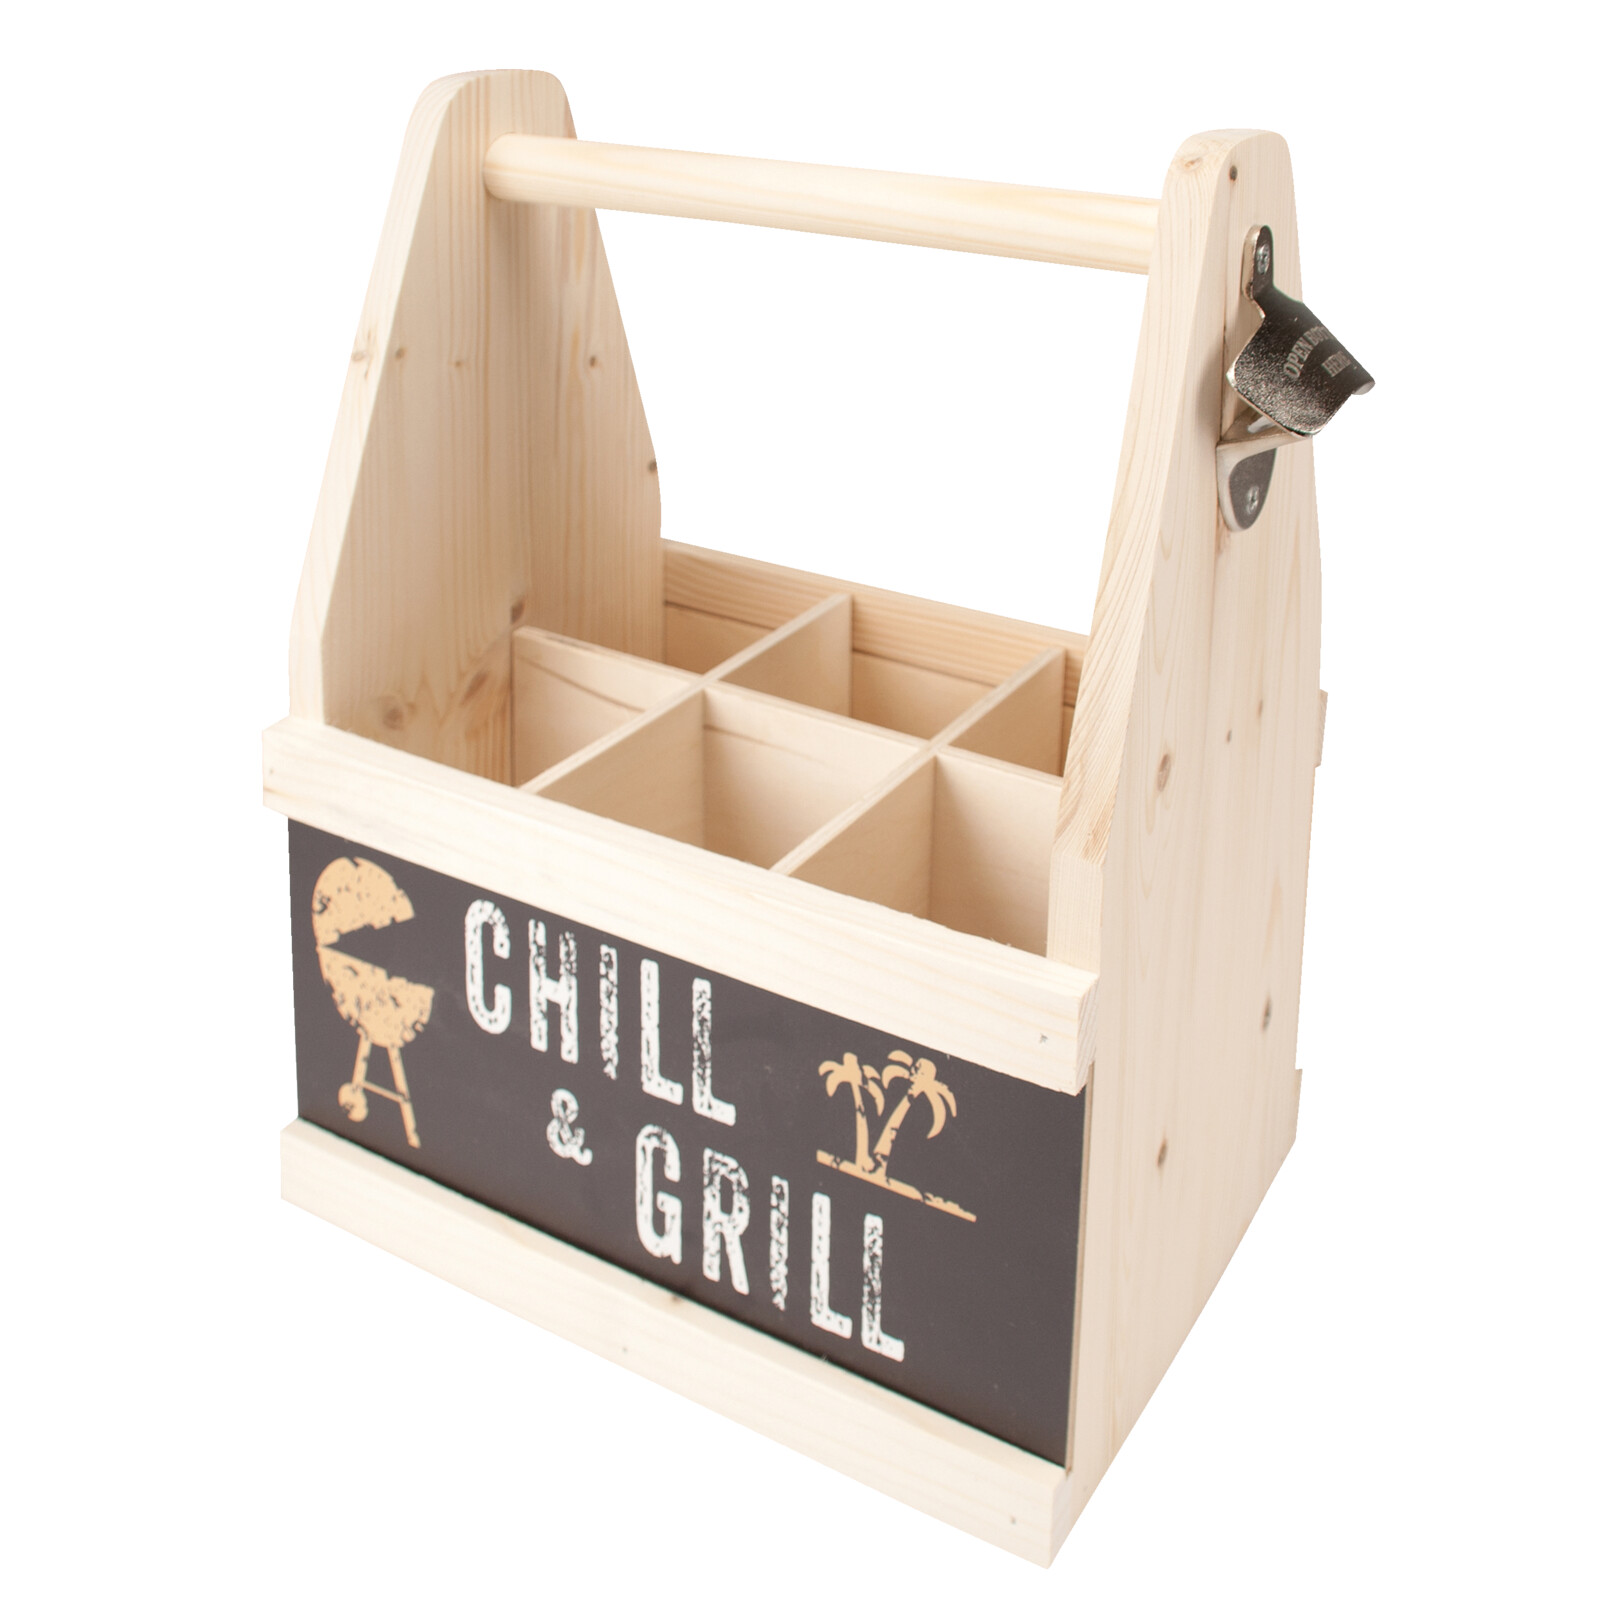 CONTENTO 866643 Beer Caddy chill & grill Flaschenträger | eBay